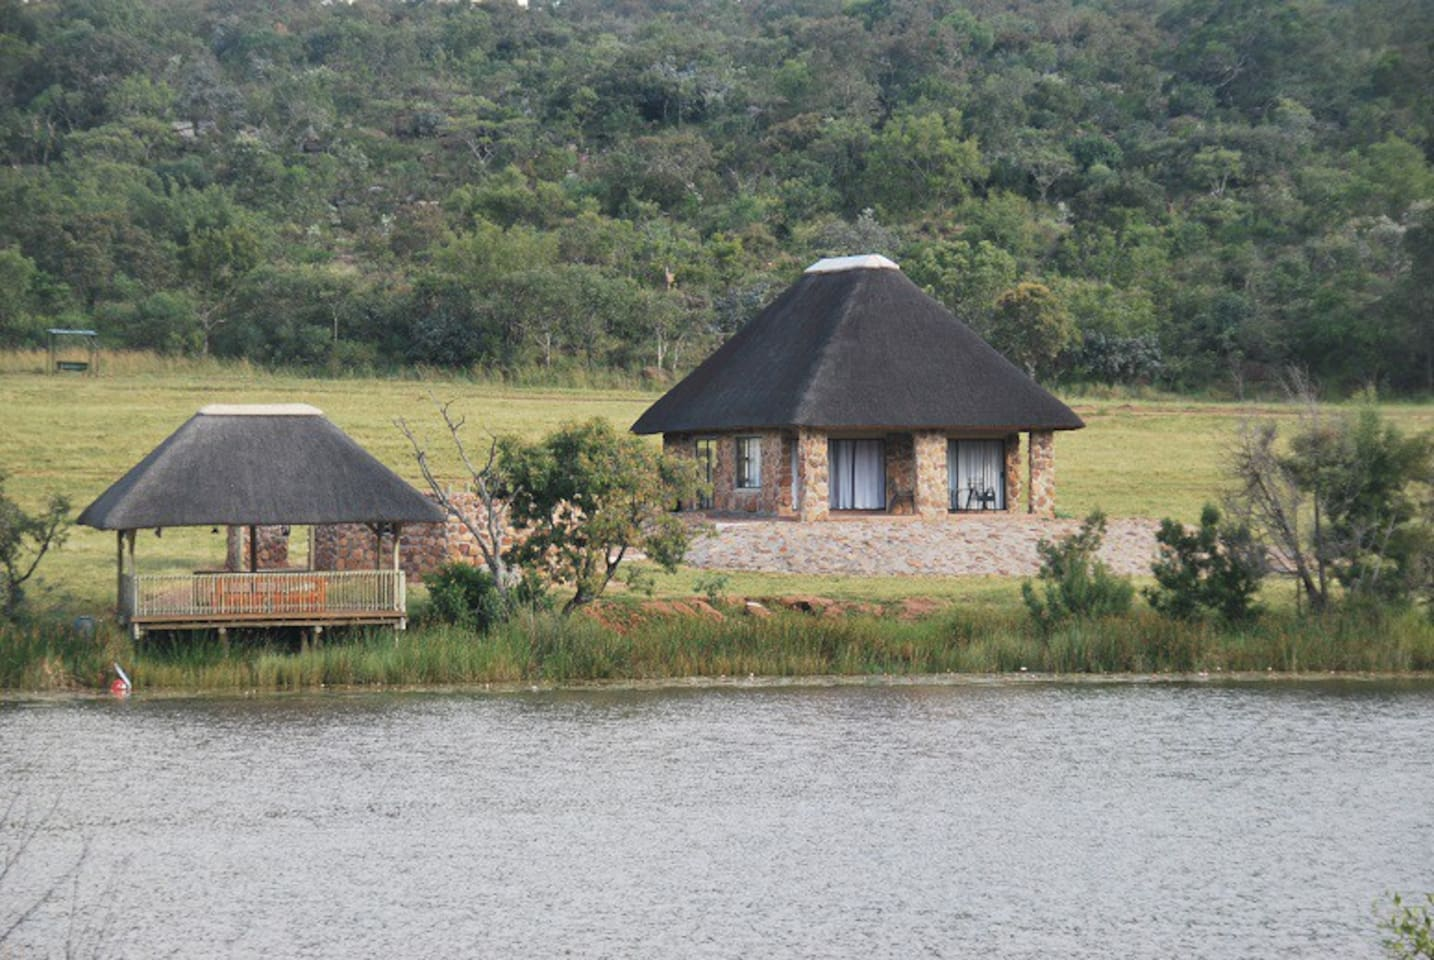 Chalet overlooks beautiful serene dam, has a lapa with fire pit and picnic deck on the water.